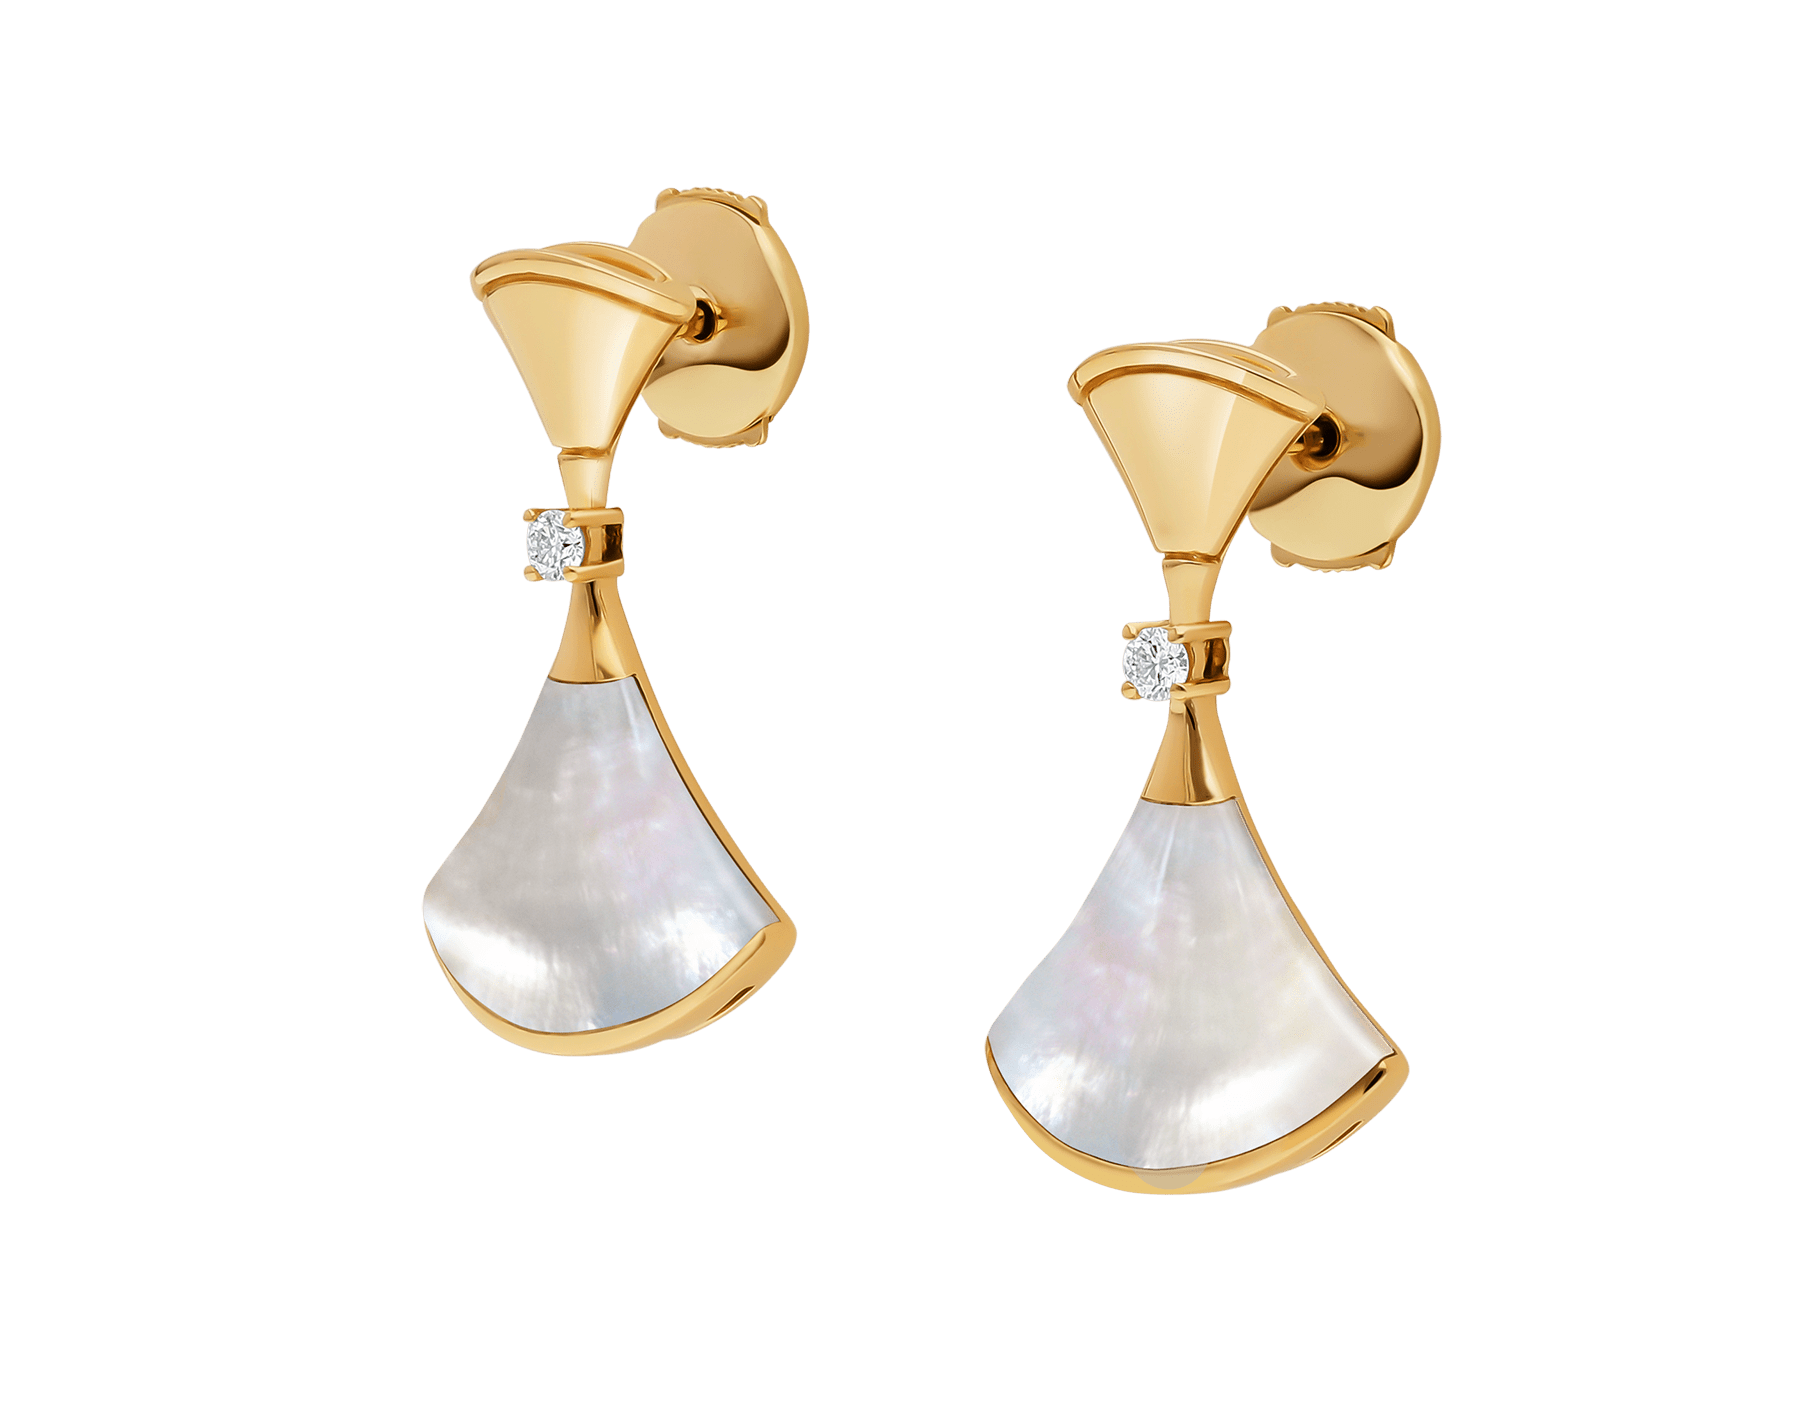 DIVAS' DREAM 18 kt yellow gold earrings set with mother-of-pearl elements and diamonds 357513 image 2